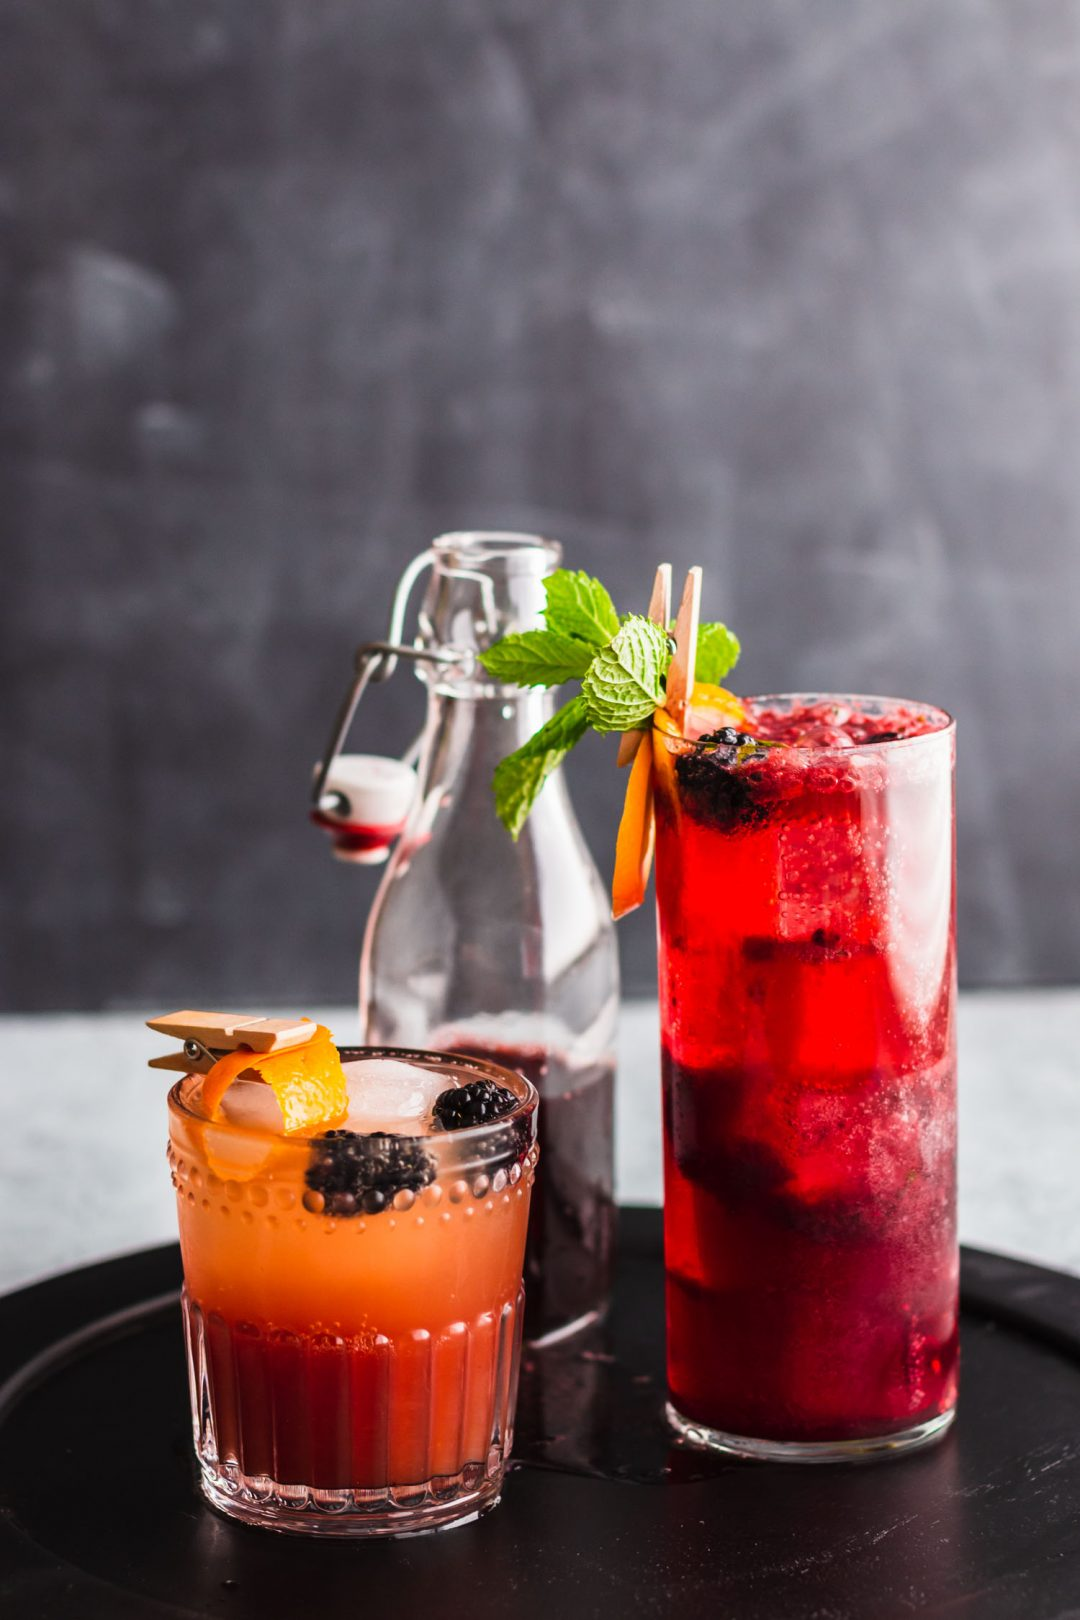 Vertical side shot of Blackberry Gin Fizz in a highball glass next to a short mocktail on a black wooden plate in front of a bottled blackberry shrub.